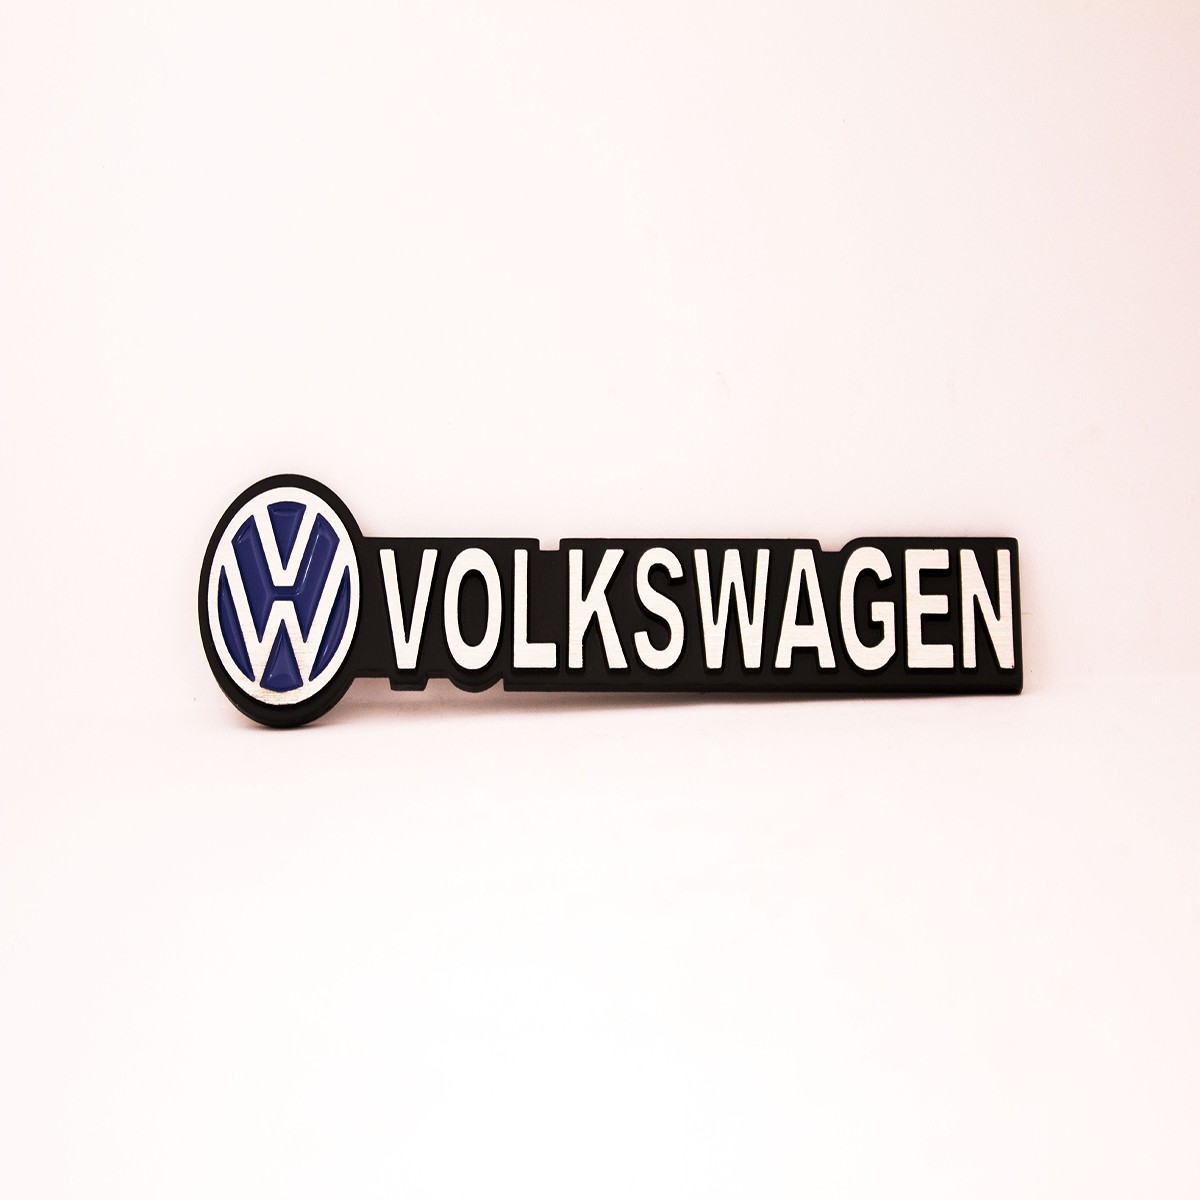 Volkswagen Metal Logo Batch for Cars